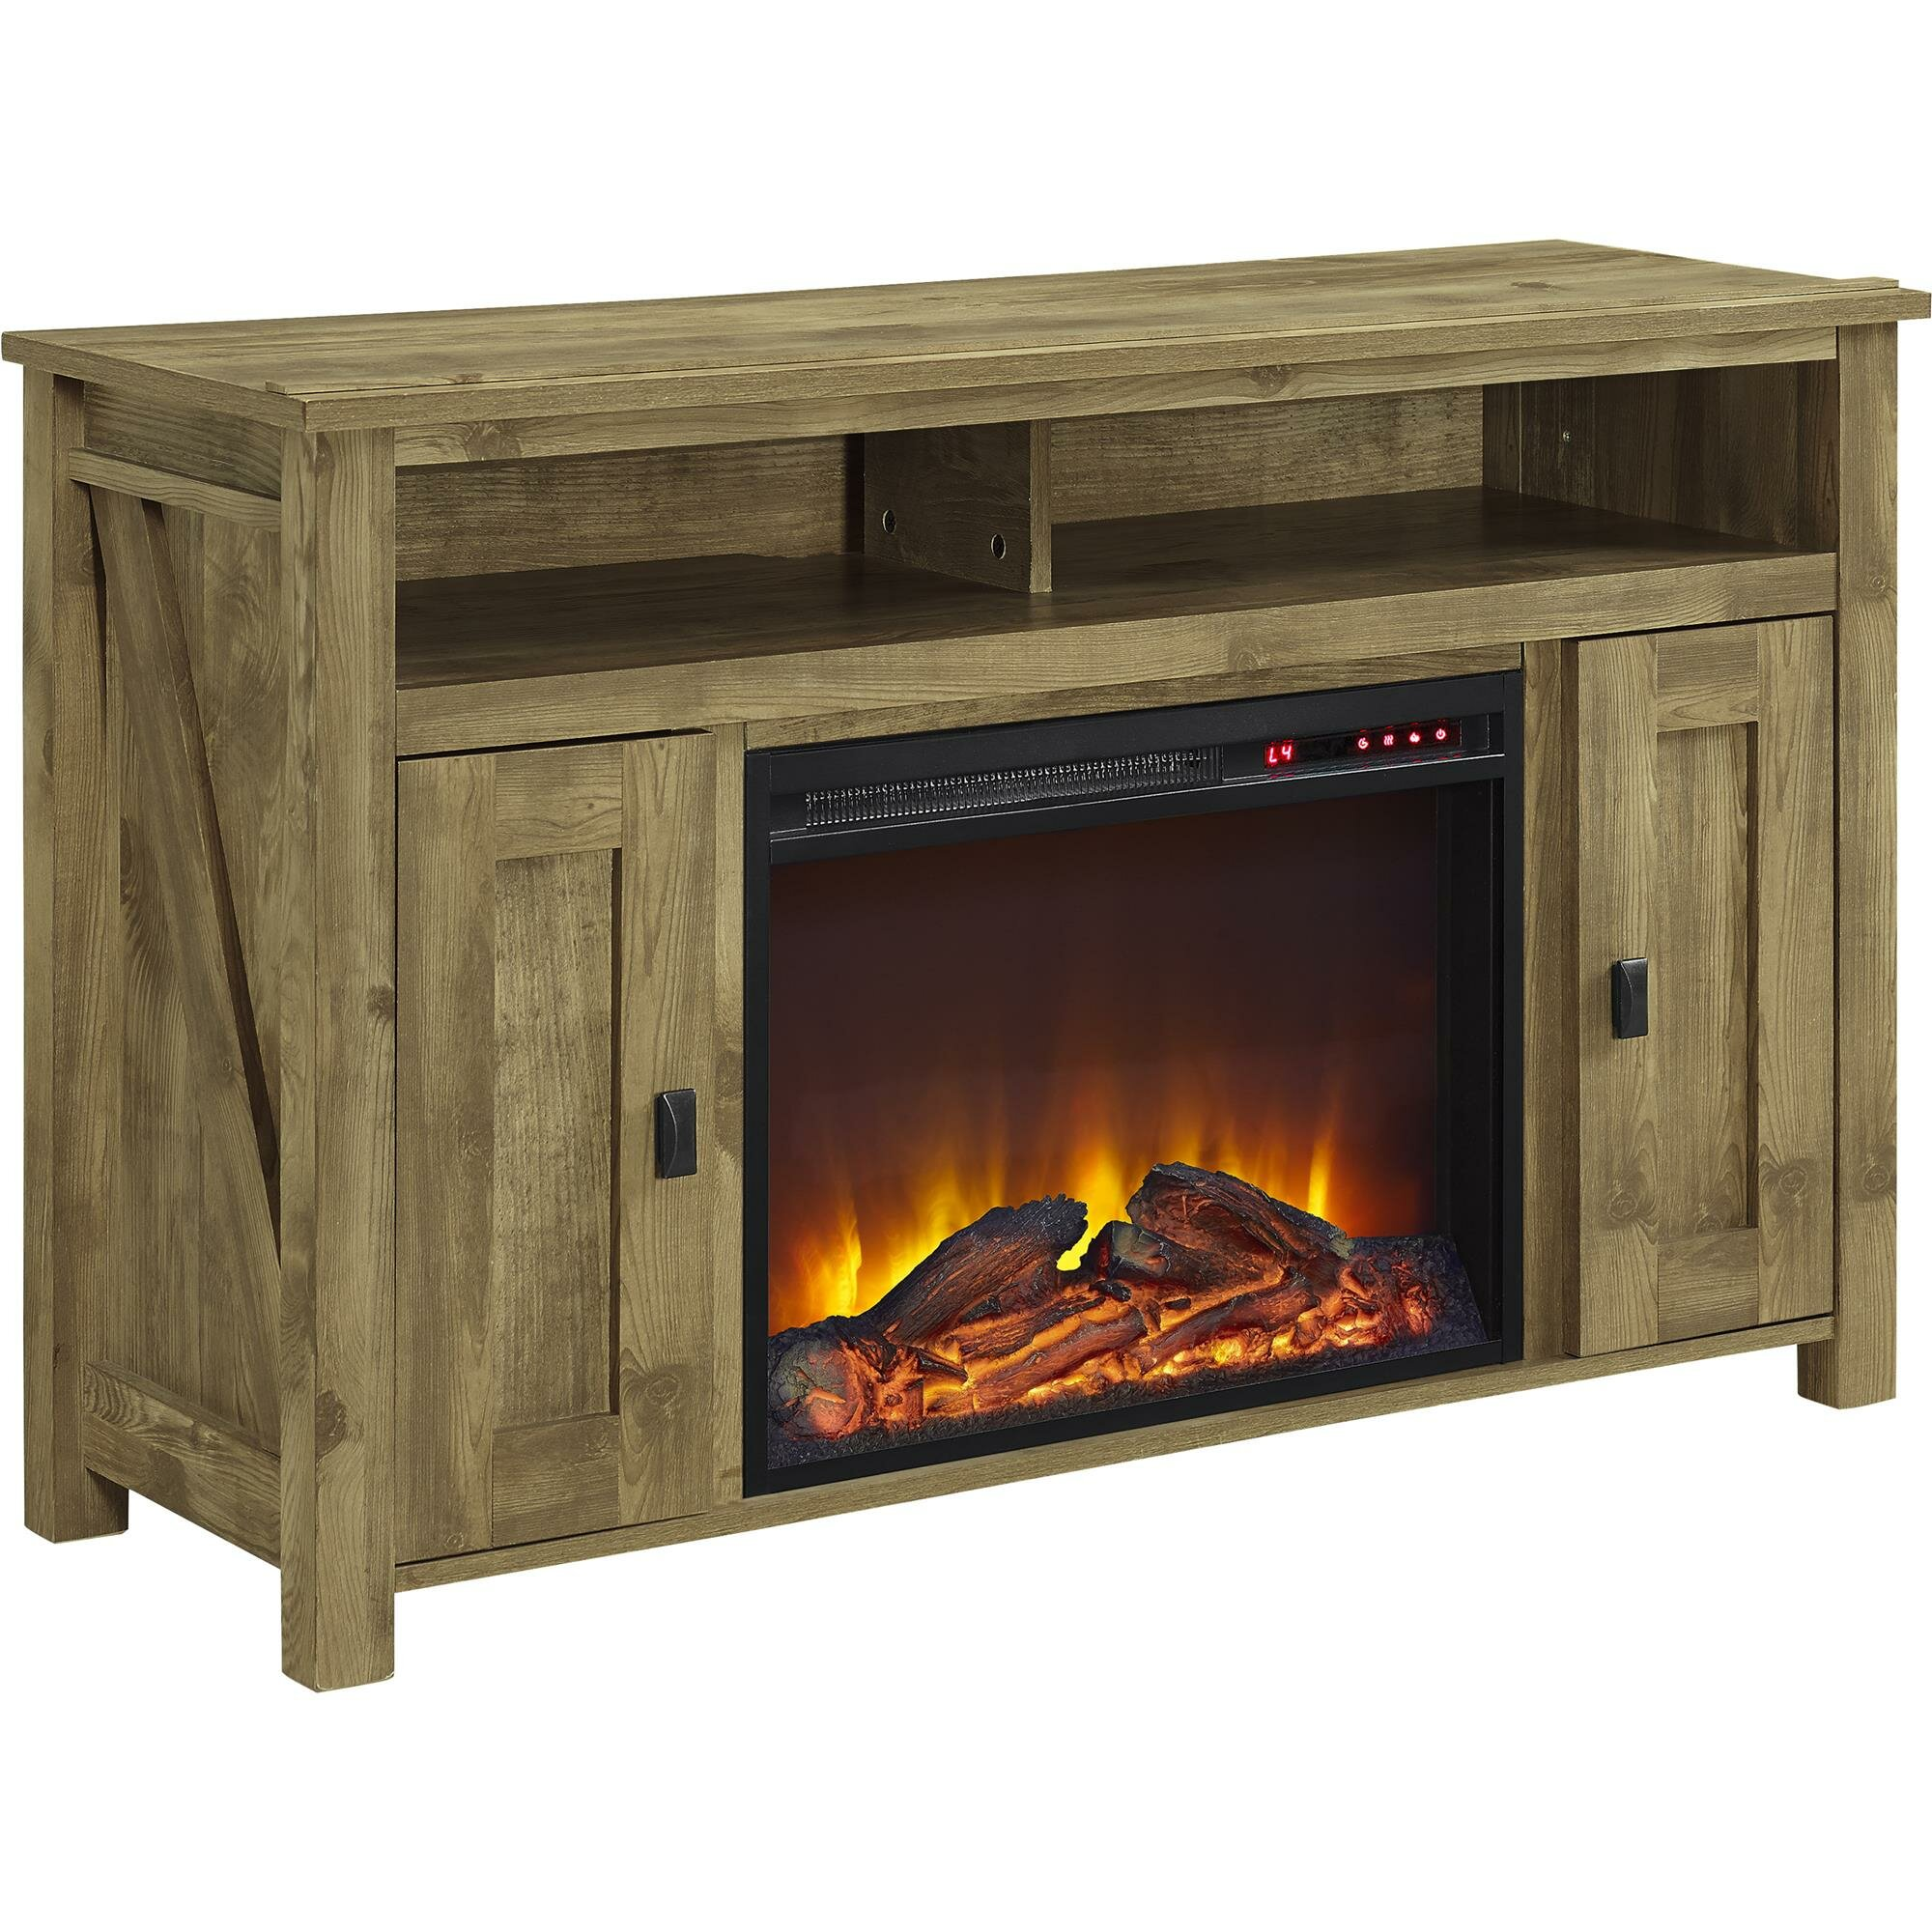 august grove gilby tv stand with electric fireplace reviews wayfair. Black Bedroom Furniture Sets. Home Design Ideas